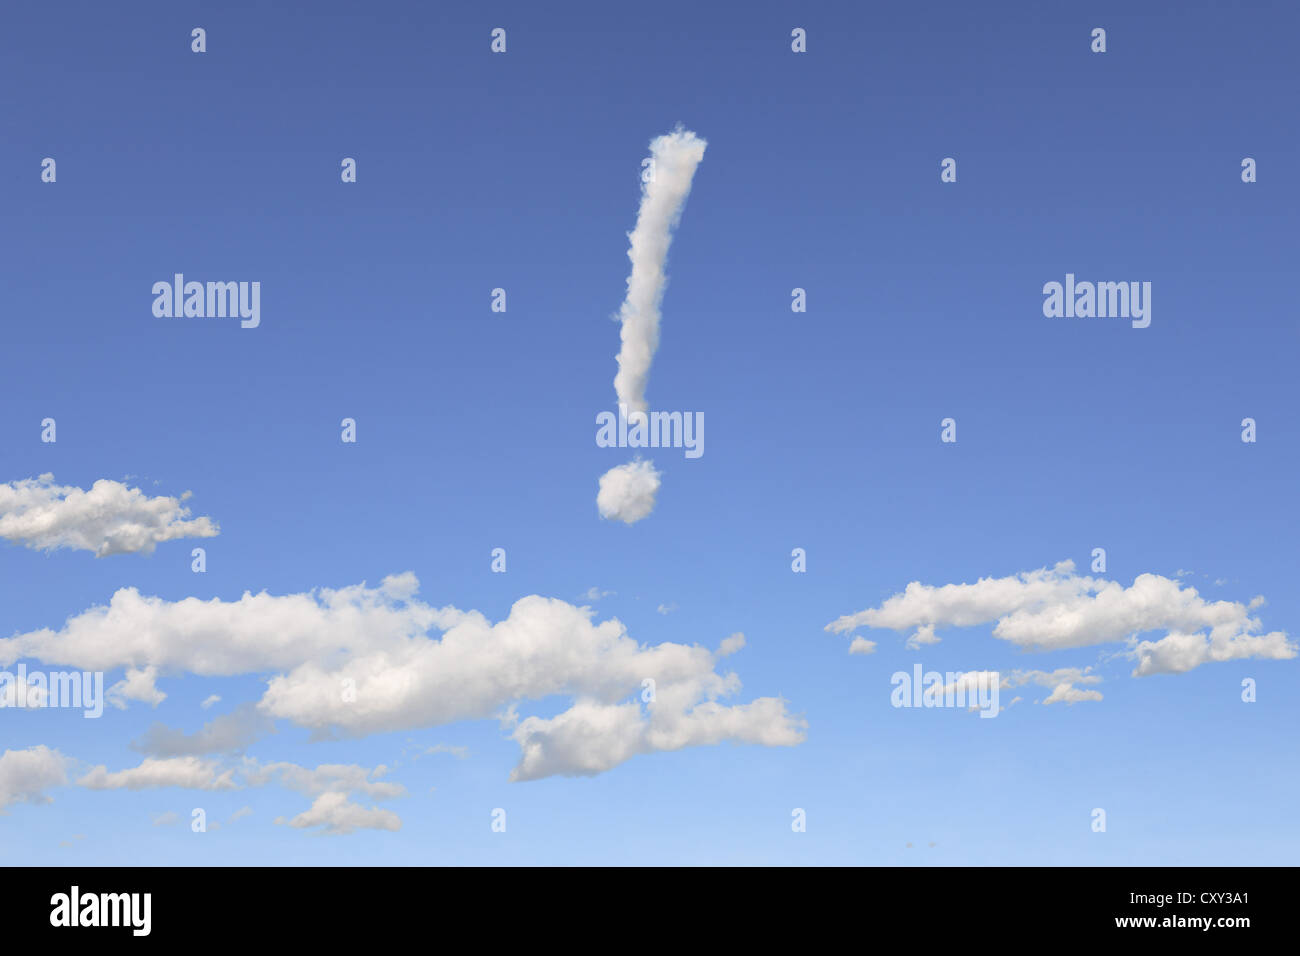 Cloud formations in the shape of an exclamation mark, illustration - Stock Image